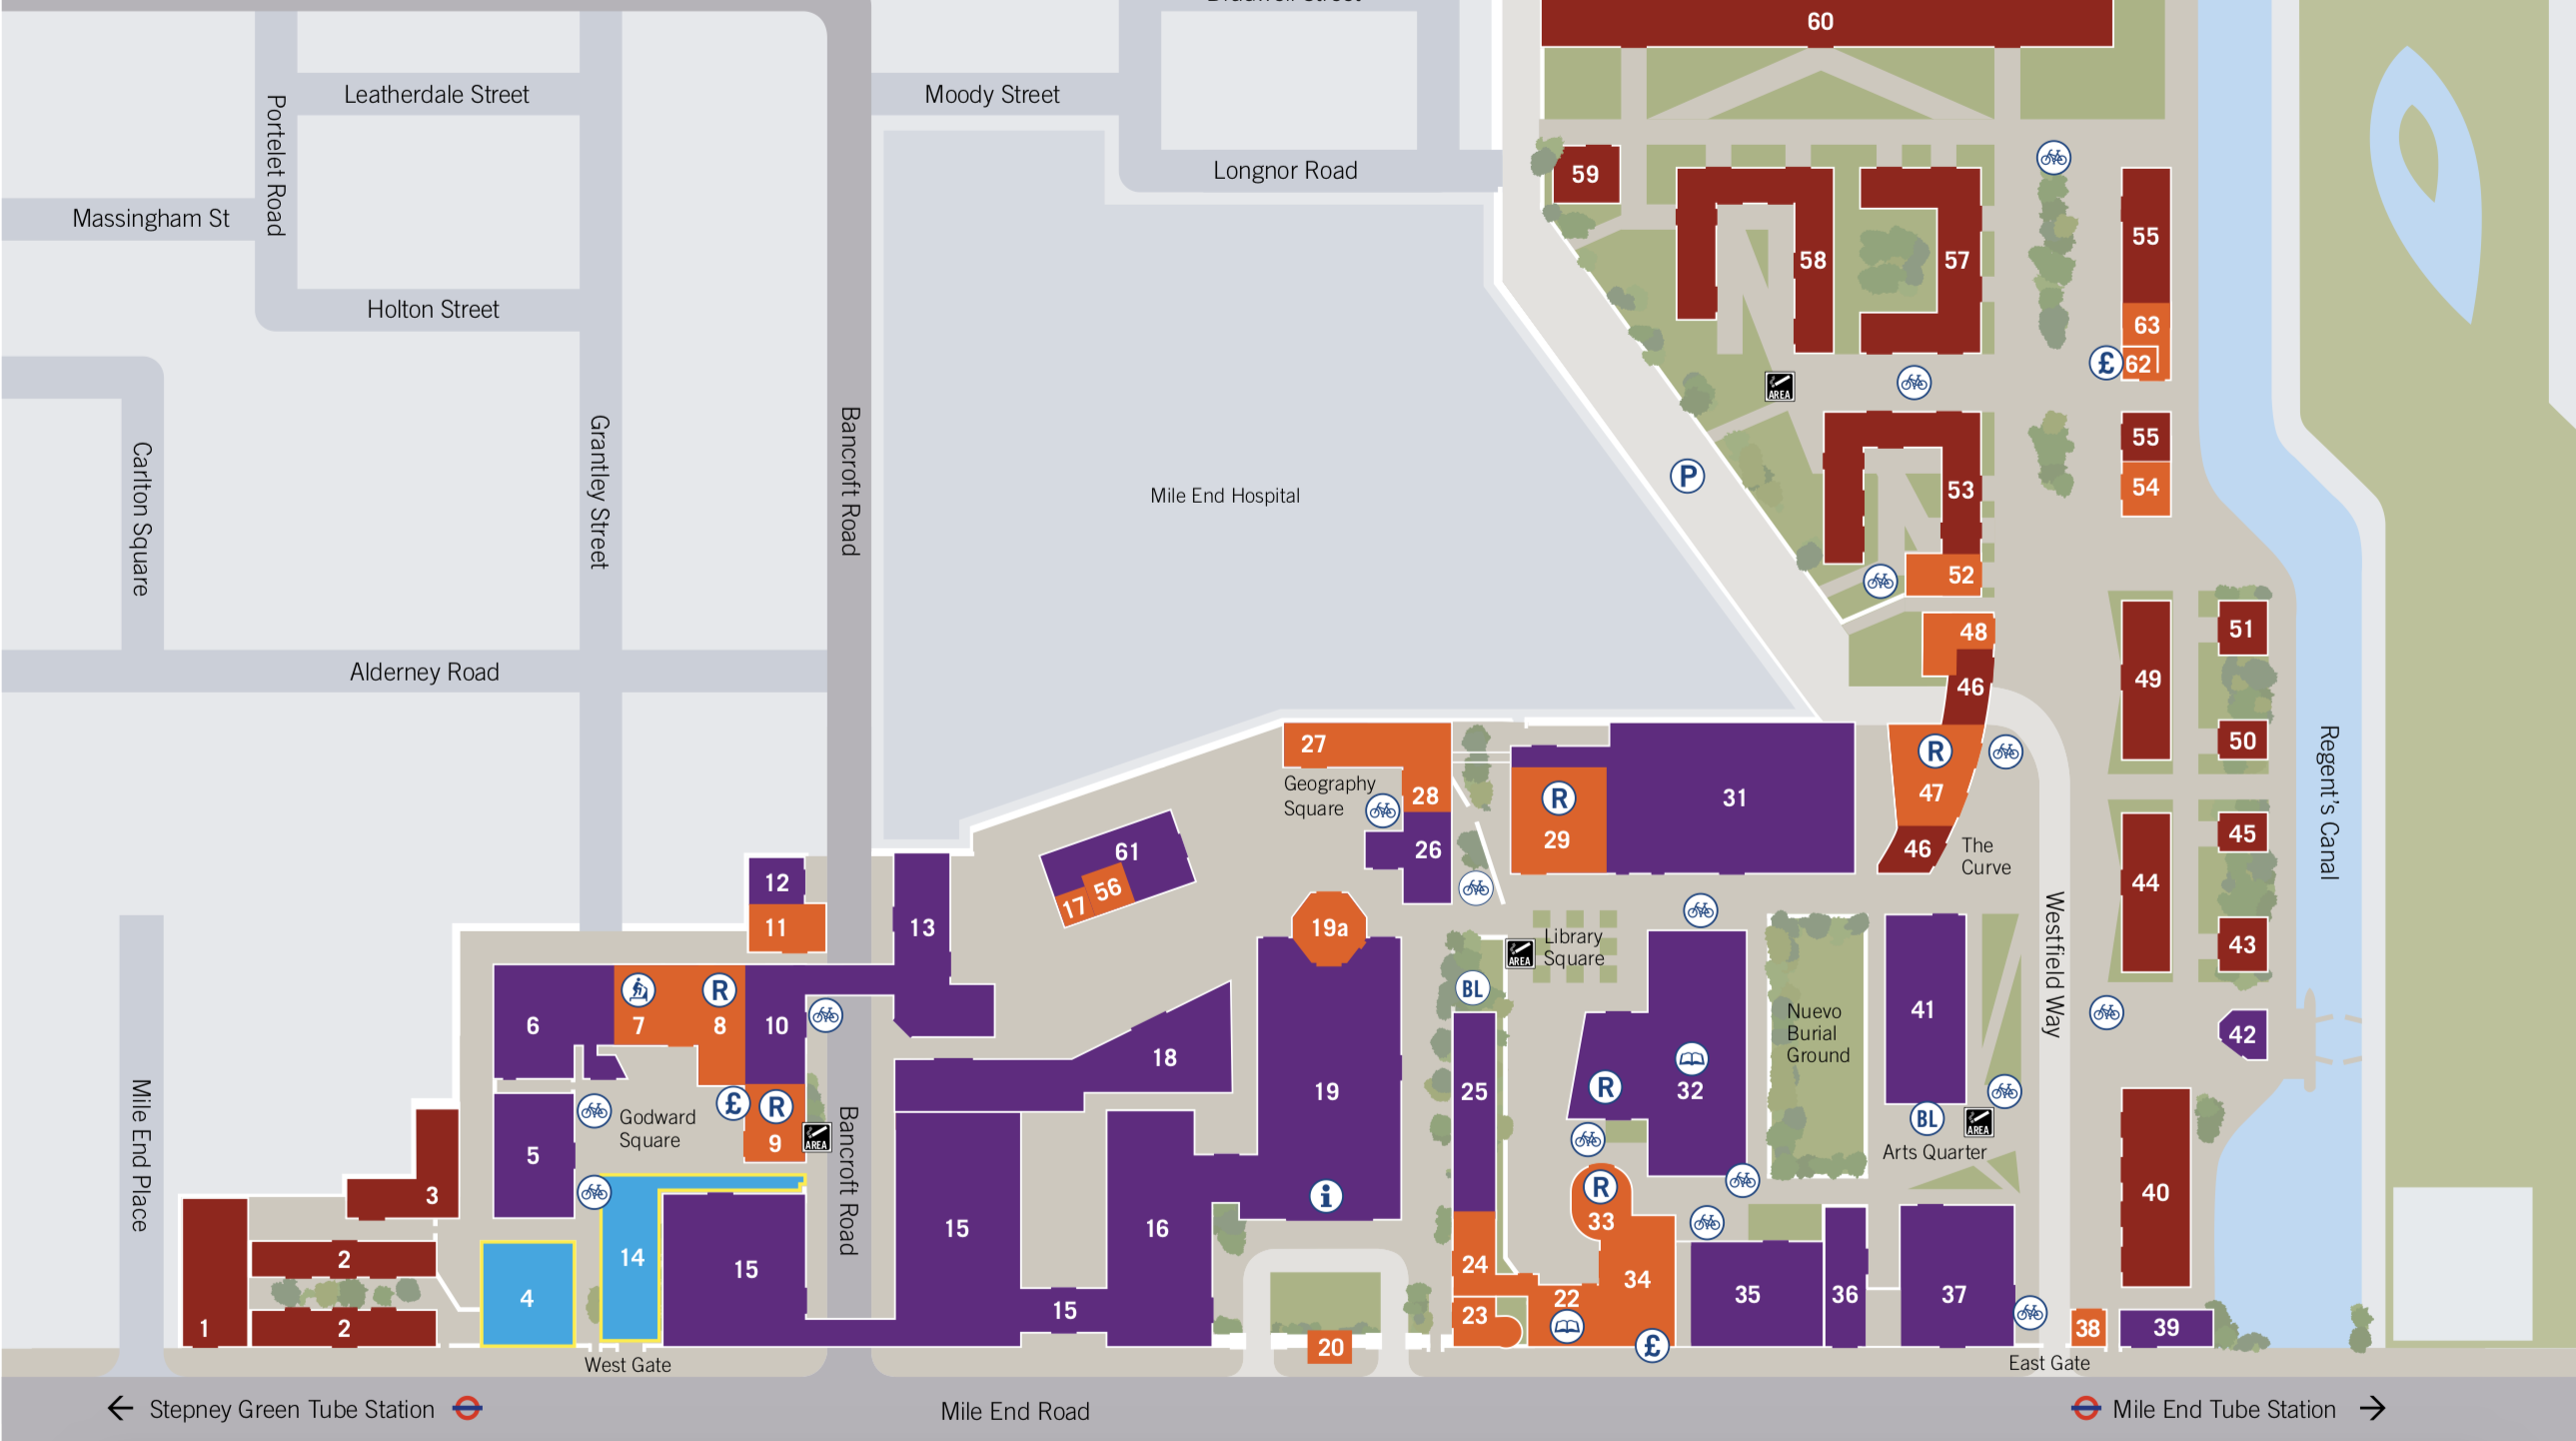 queen mary university of london campus map Queen Mary University Of London Restud Tour 2018 queen mary university of london campus map